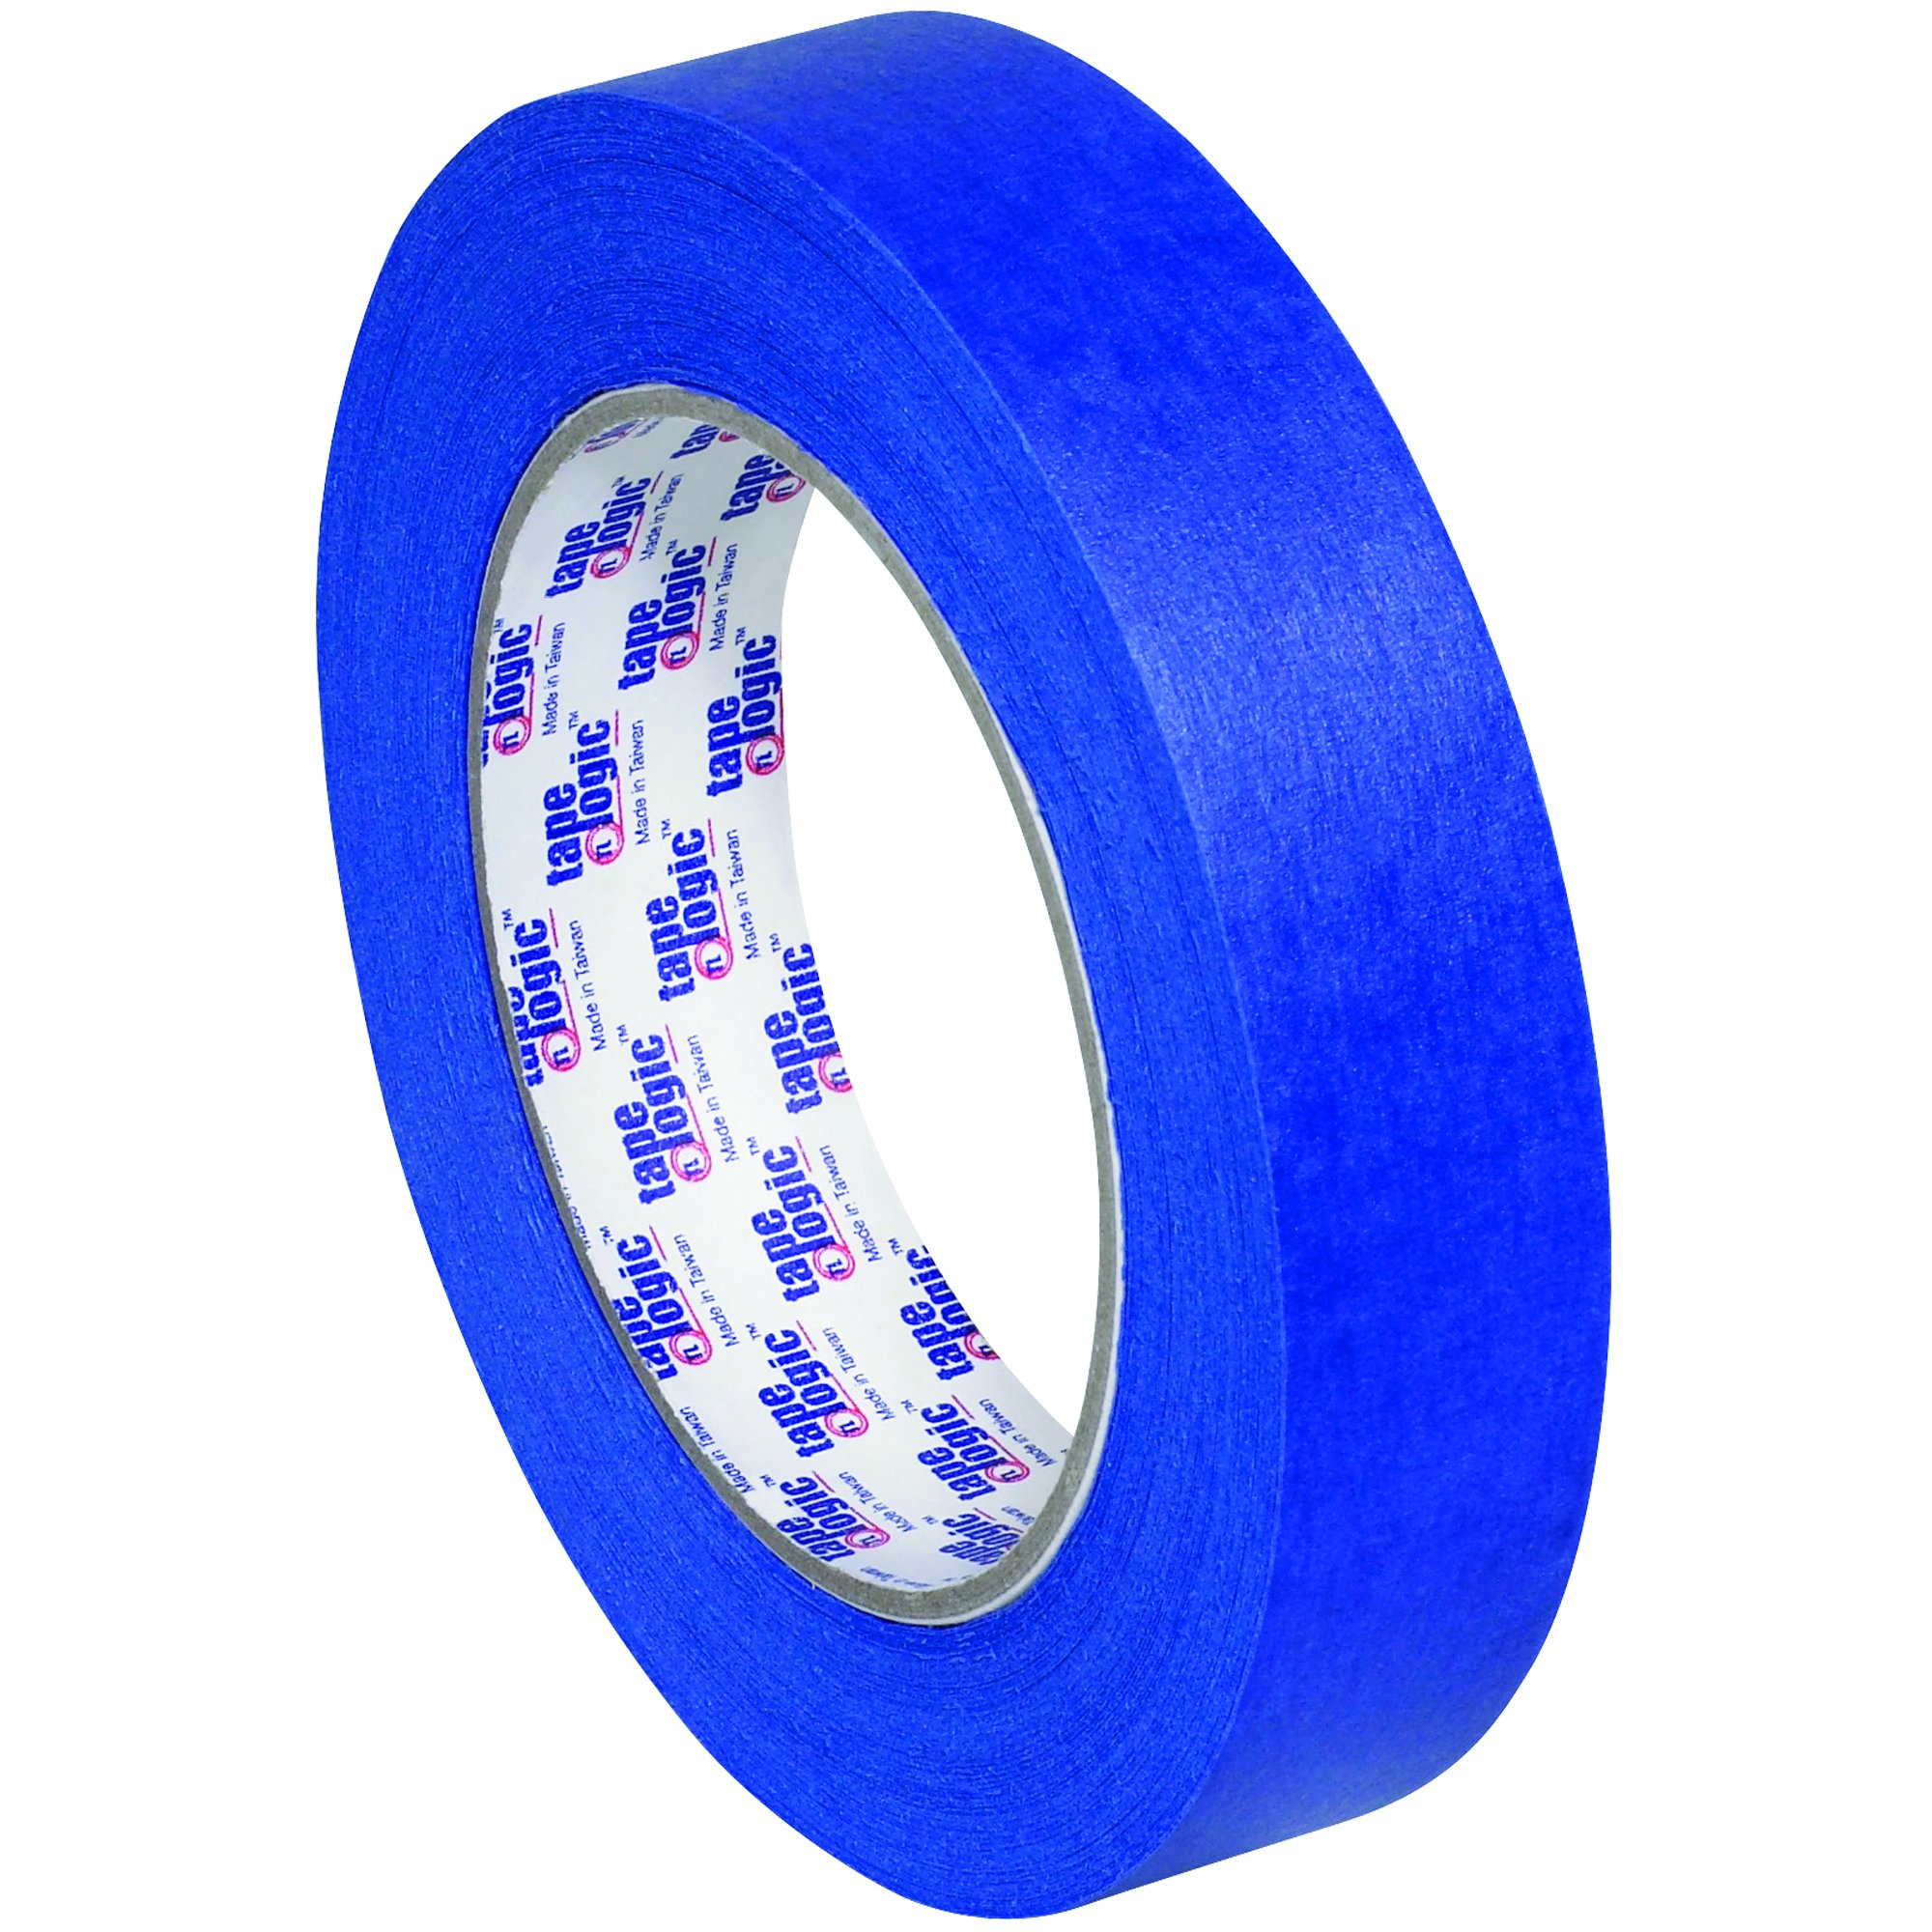 BOX USA BT9353000 Tape Logic 3000 Painter's Tape, 1'' x 60 yd., Blue (Pack of 36) by BOX USA